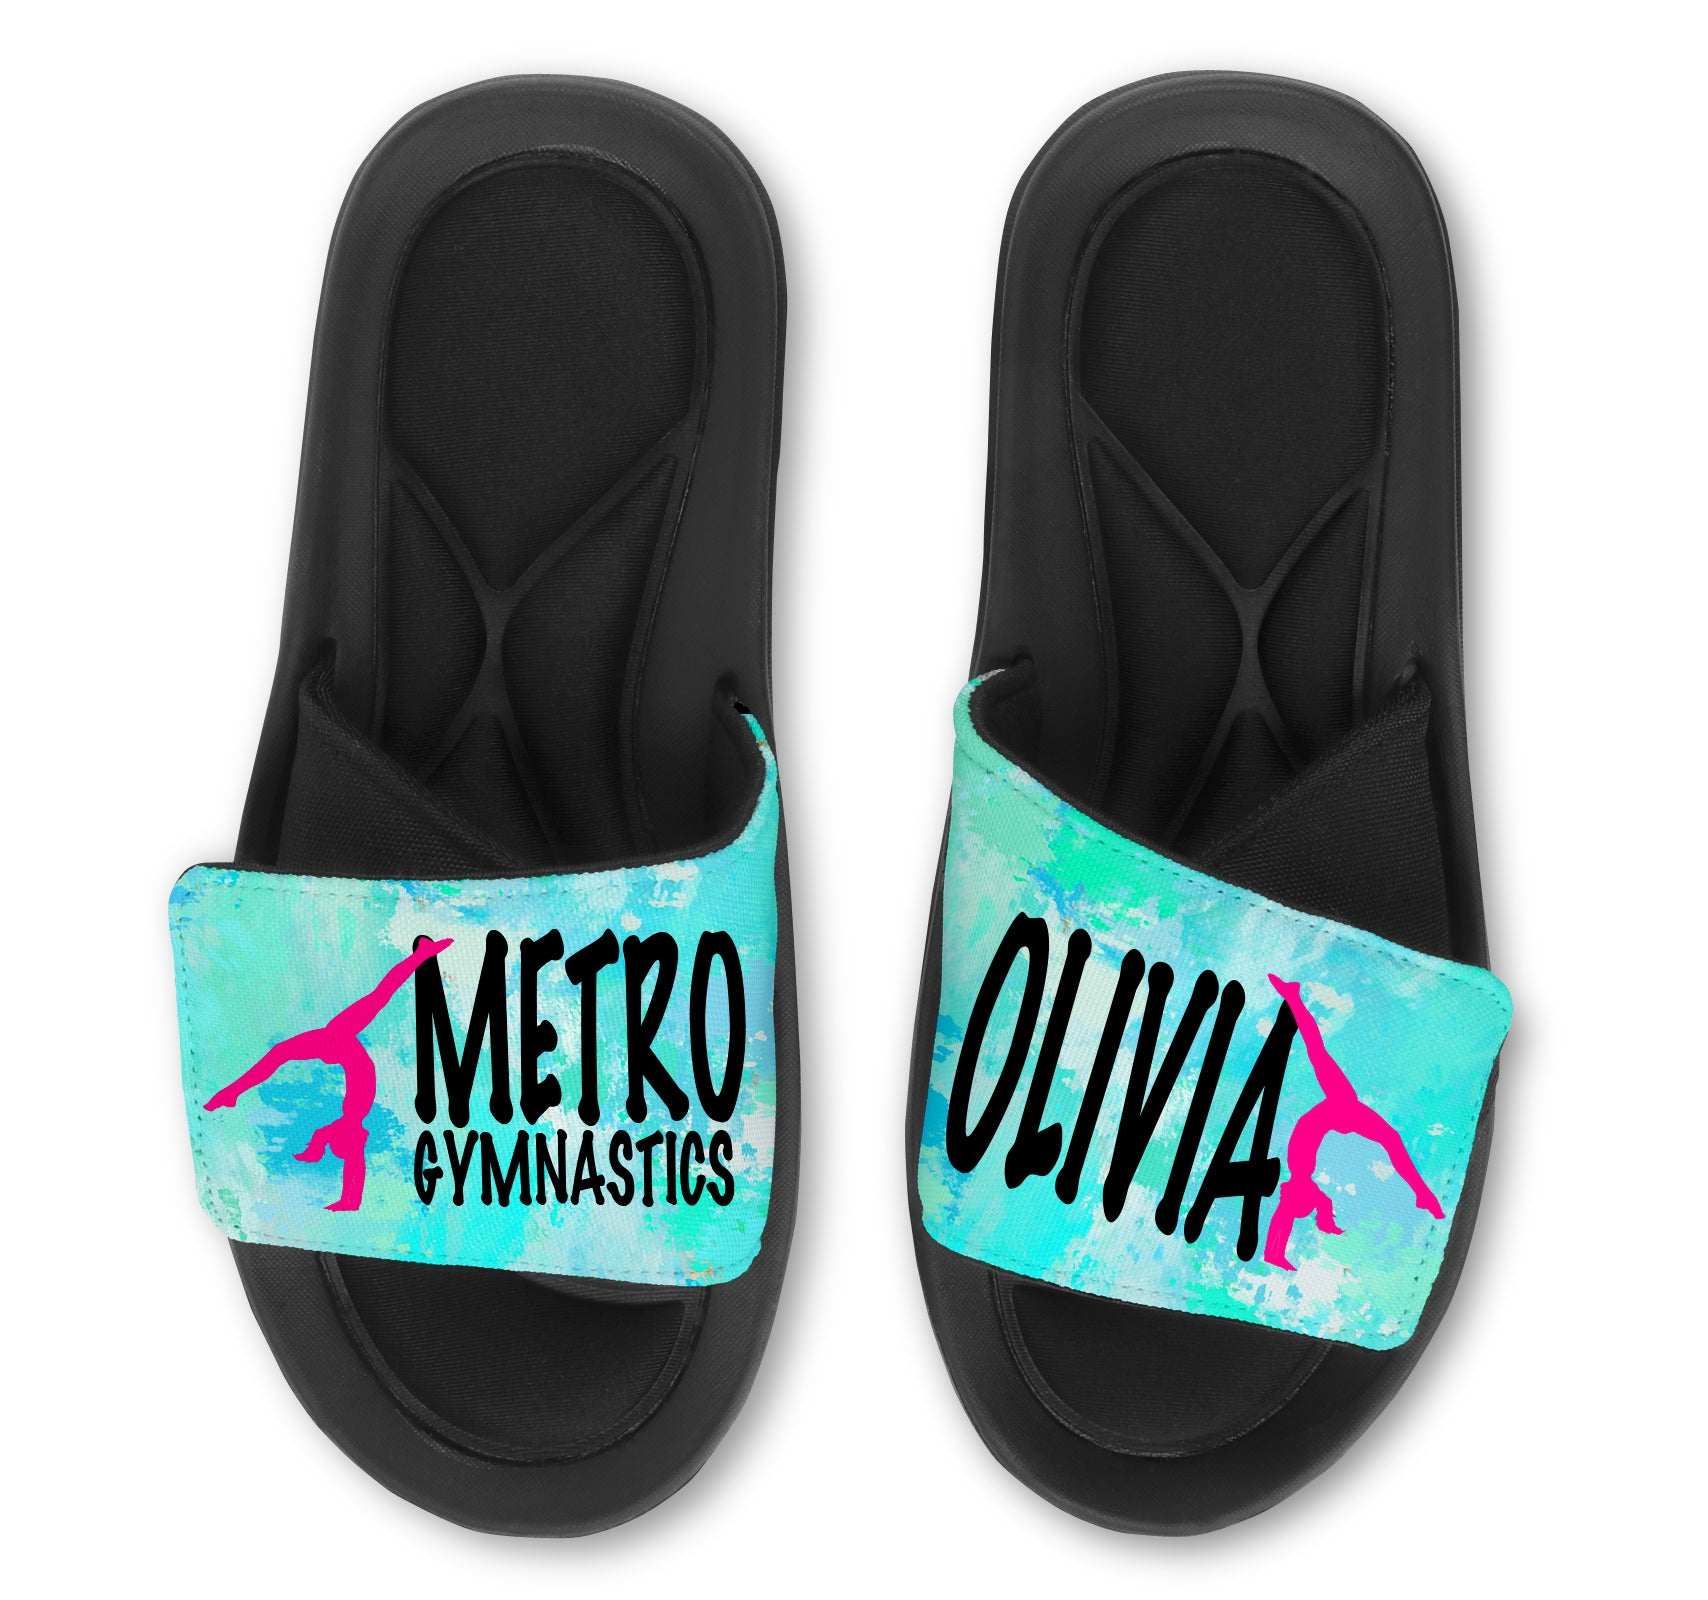 Personalized Gymnastics Slides / Sandals - MARBLE - Choose your Background Color!